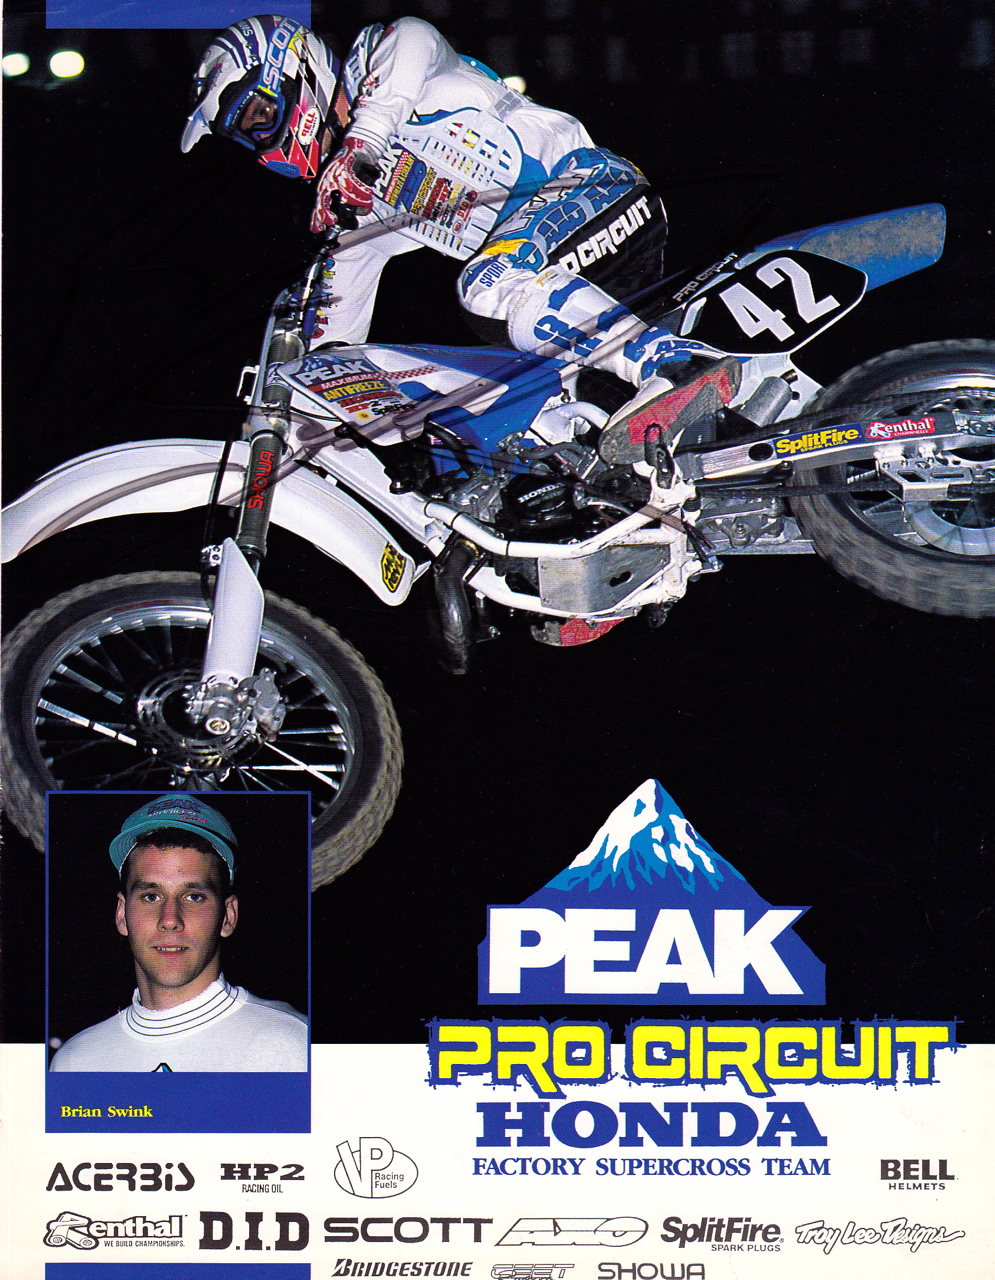 My Favorite Pics Of The Swinkster Brian Swink Moto